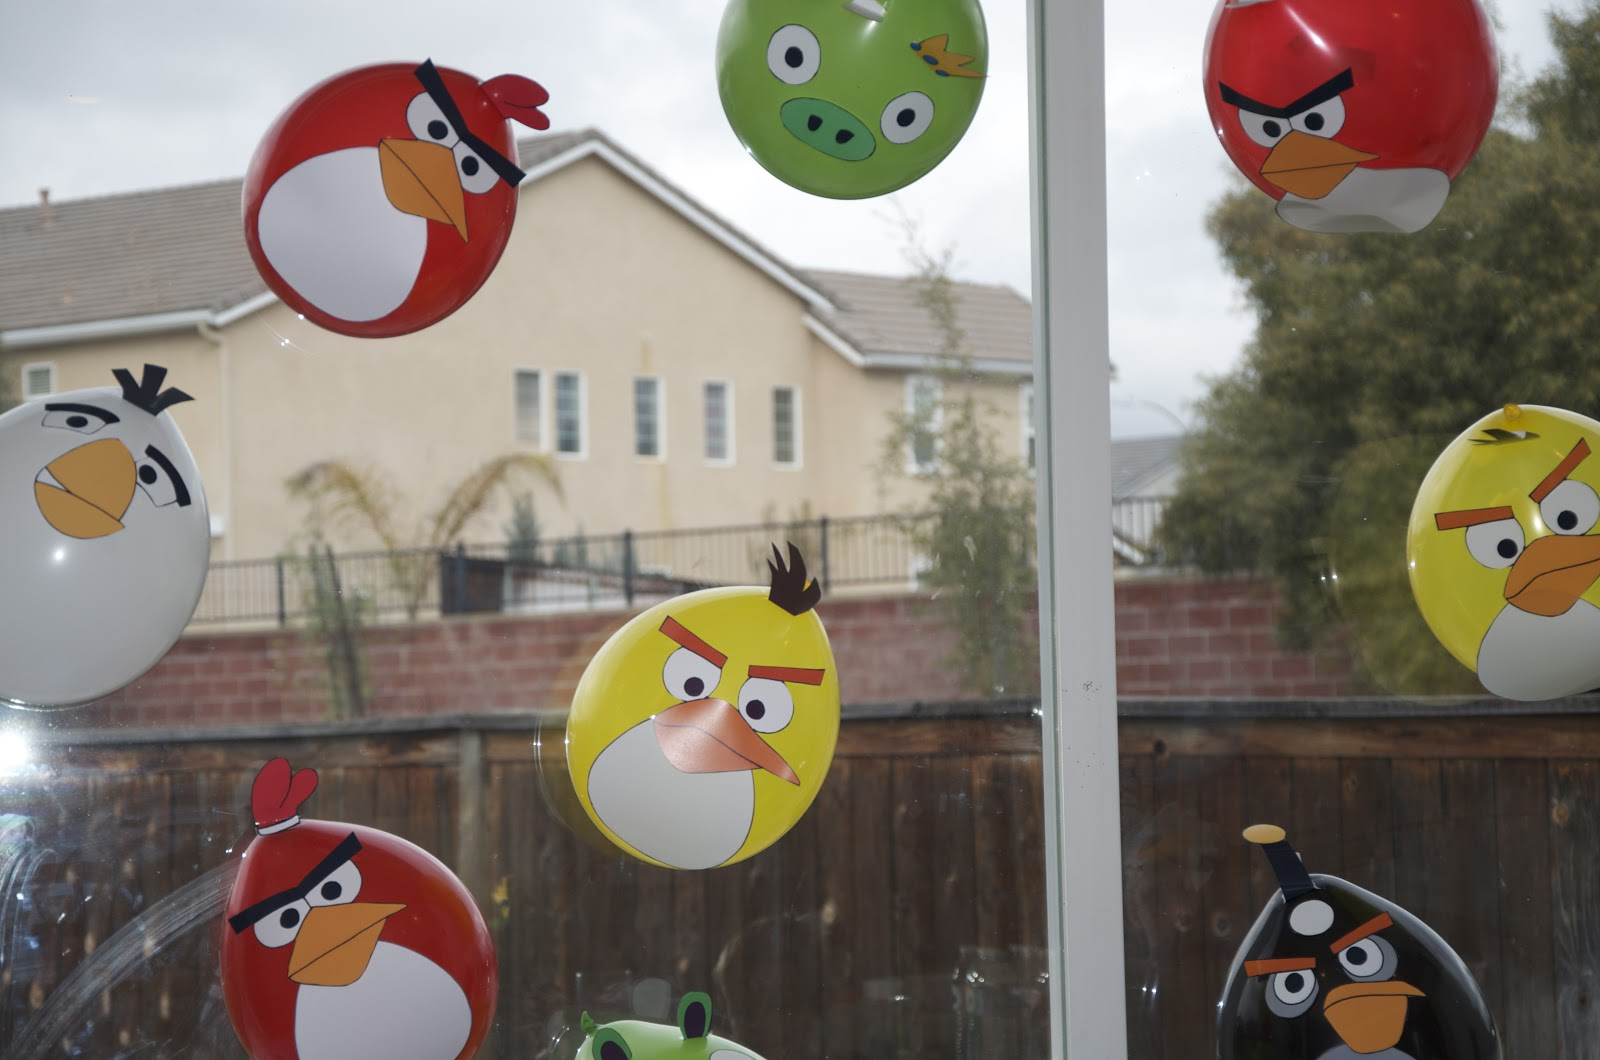 3 Little Things Angry Birds Party